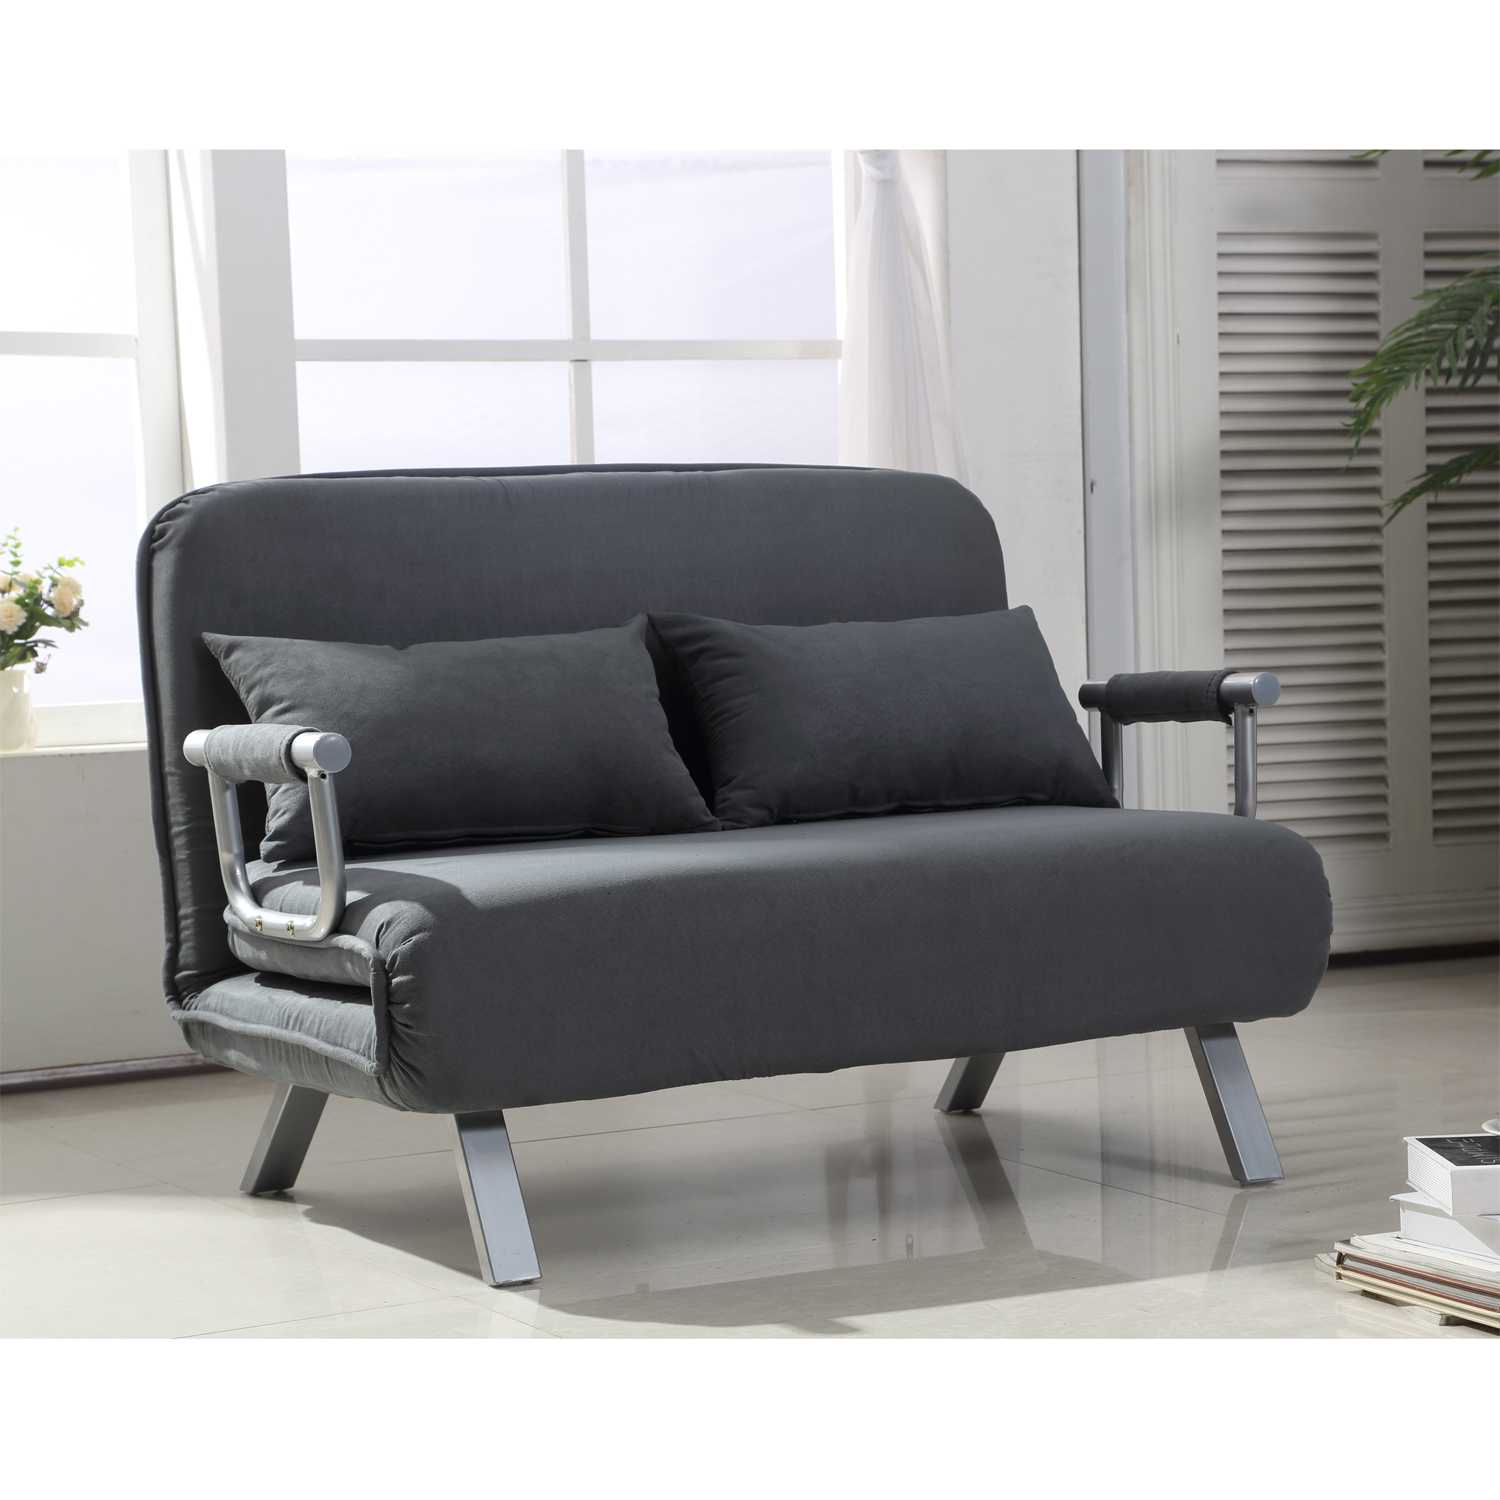 homcom small sofa couch futon with fold up bed and adjustable backrest featuring modern design with chic suede walmart com walmart com